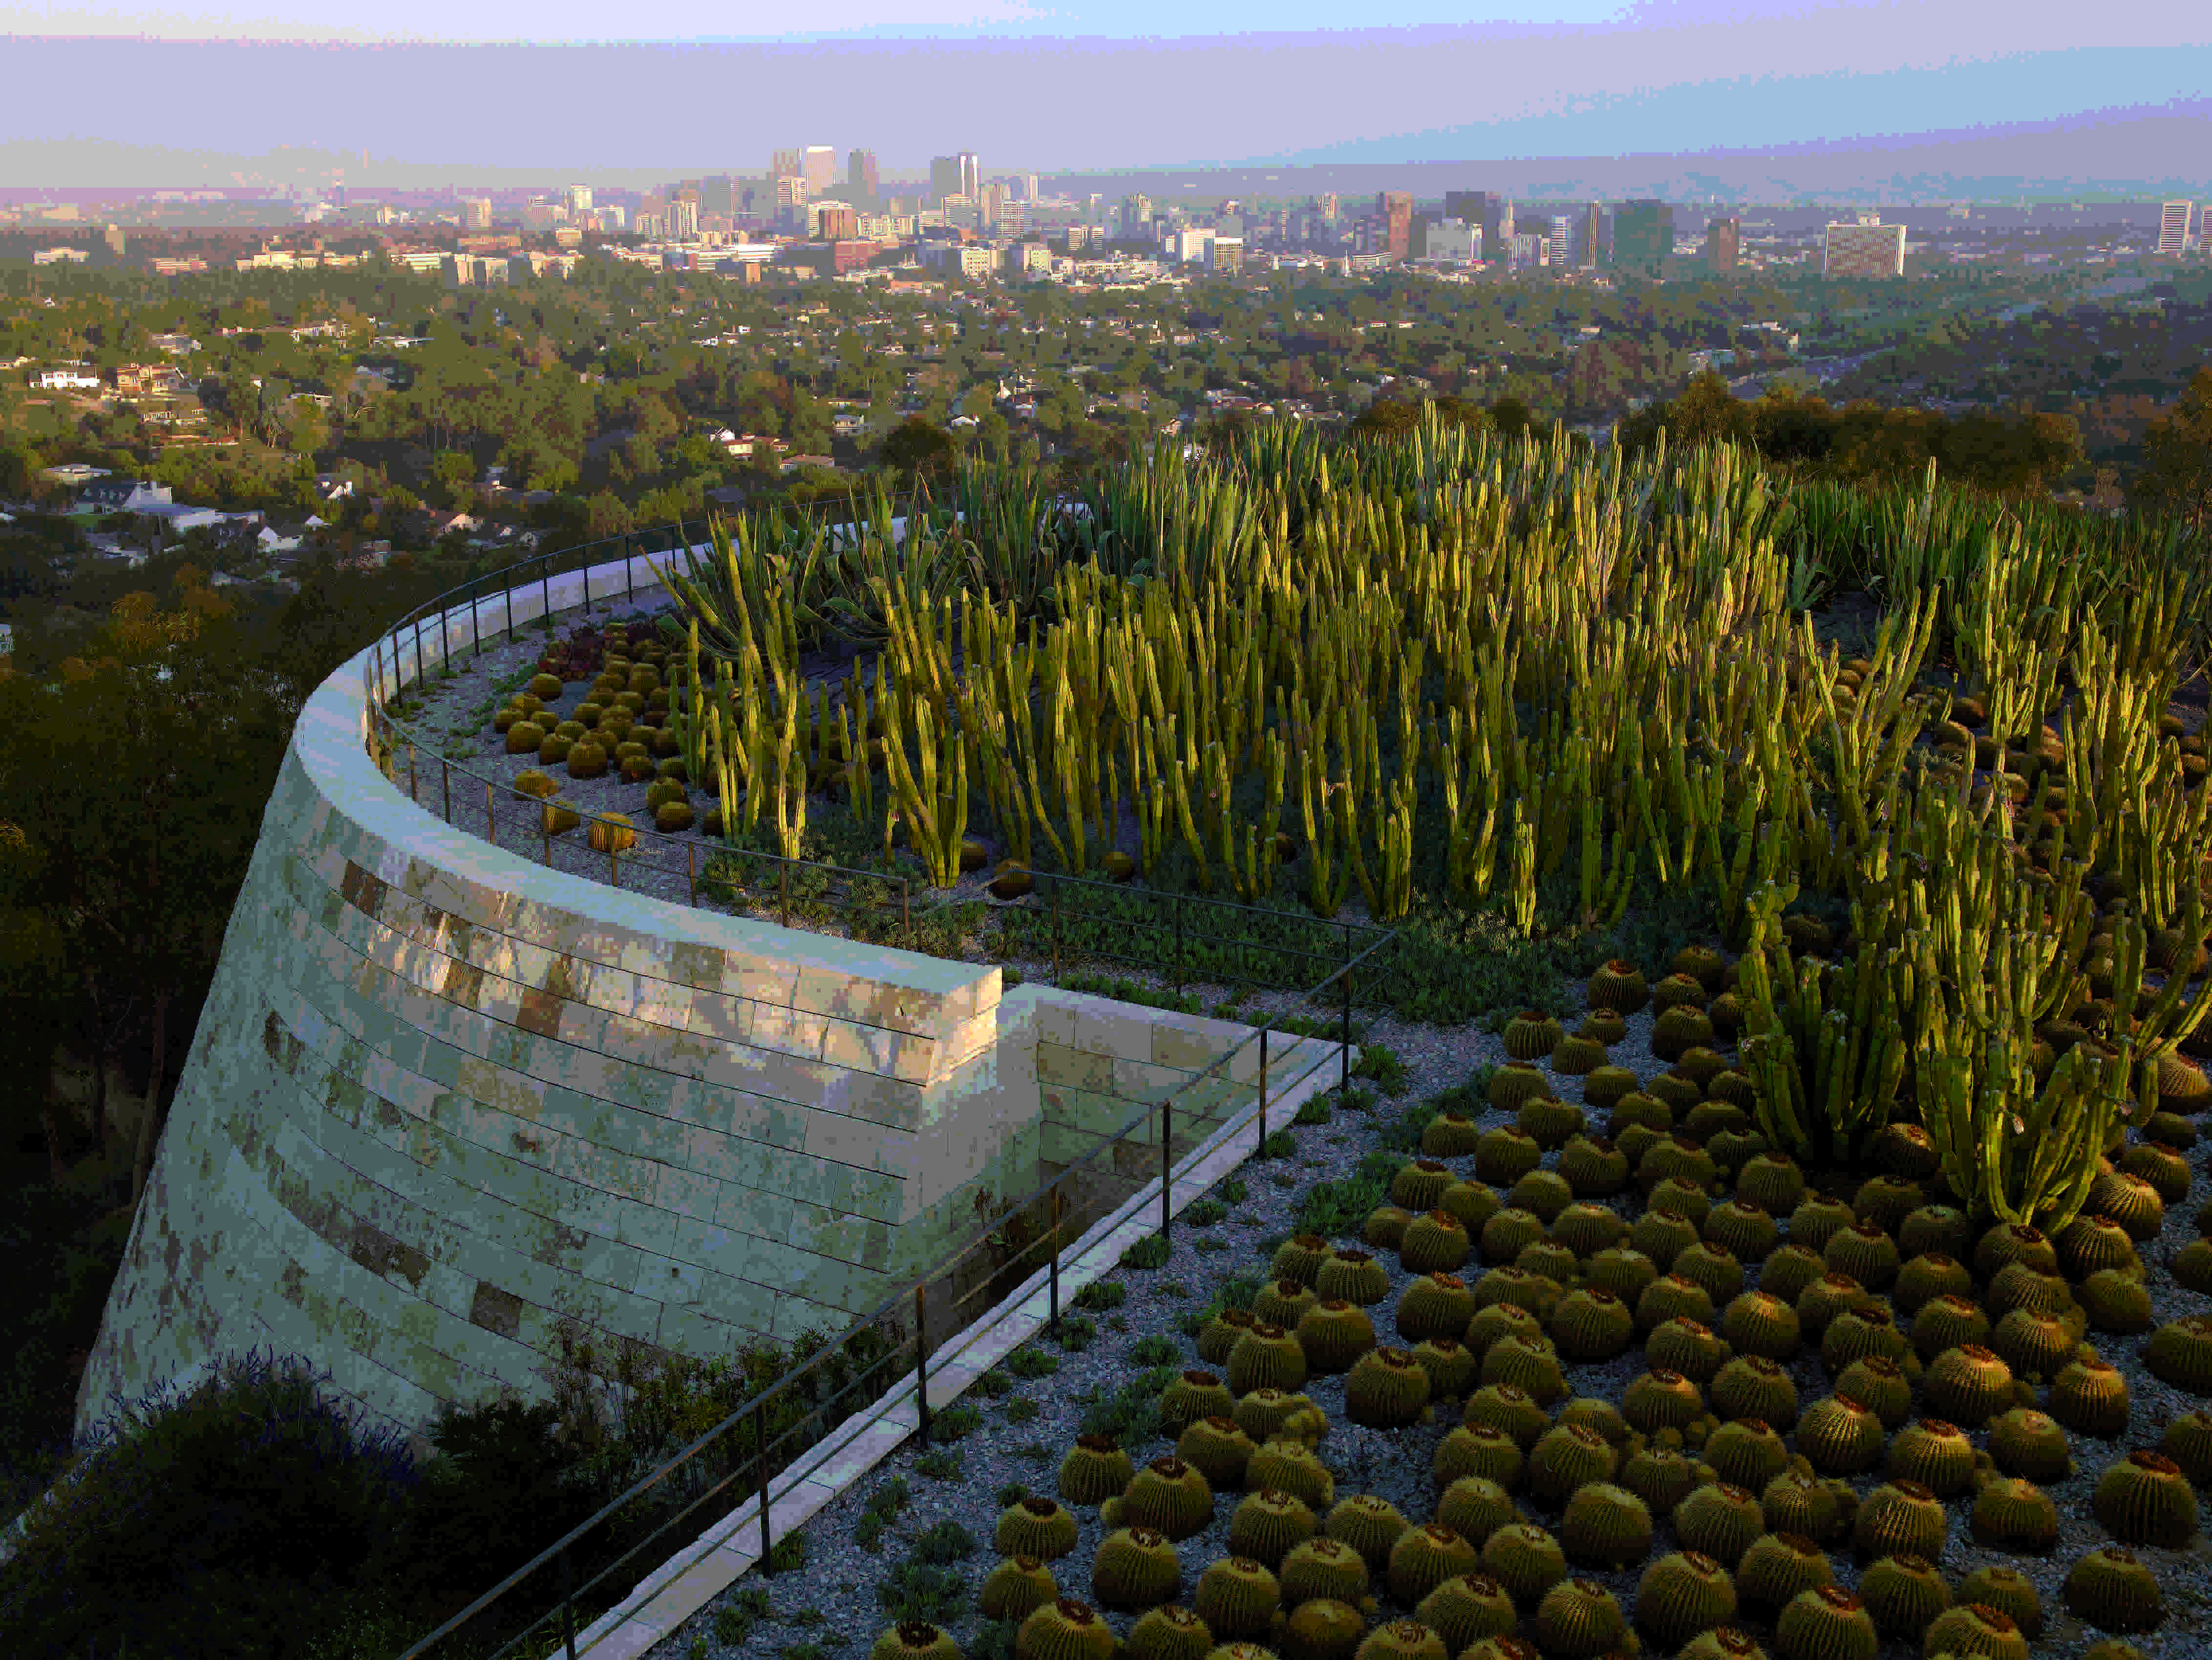 The J. Paul Getty Center